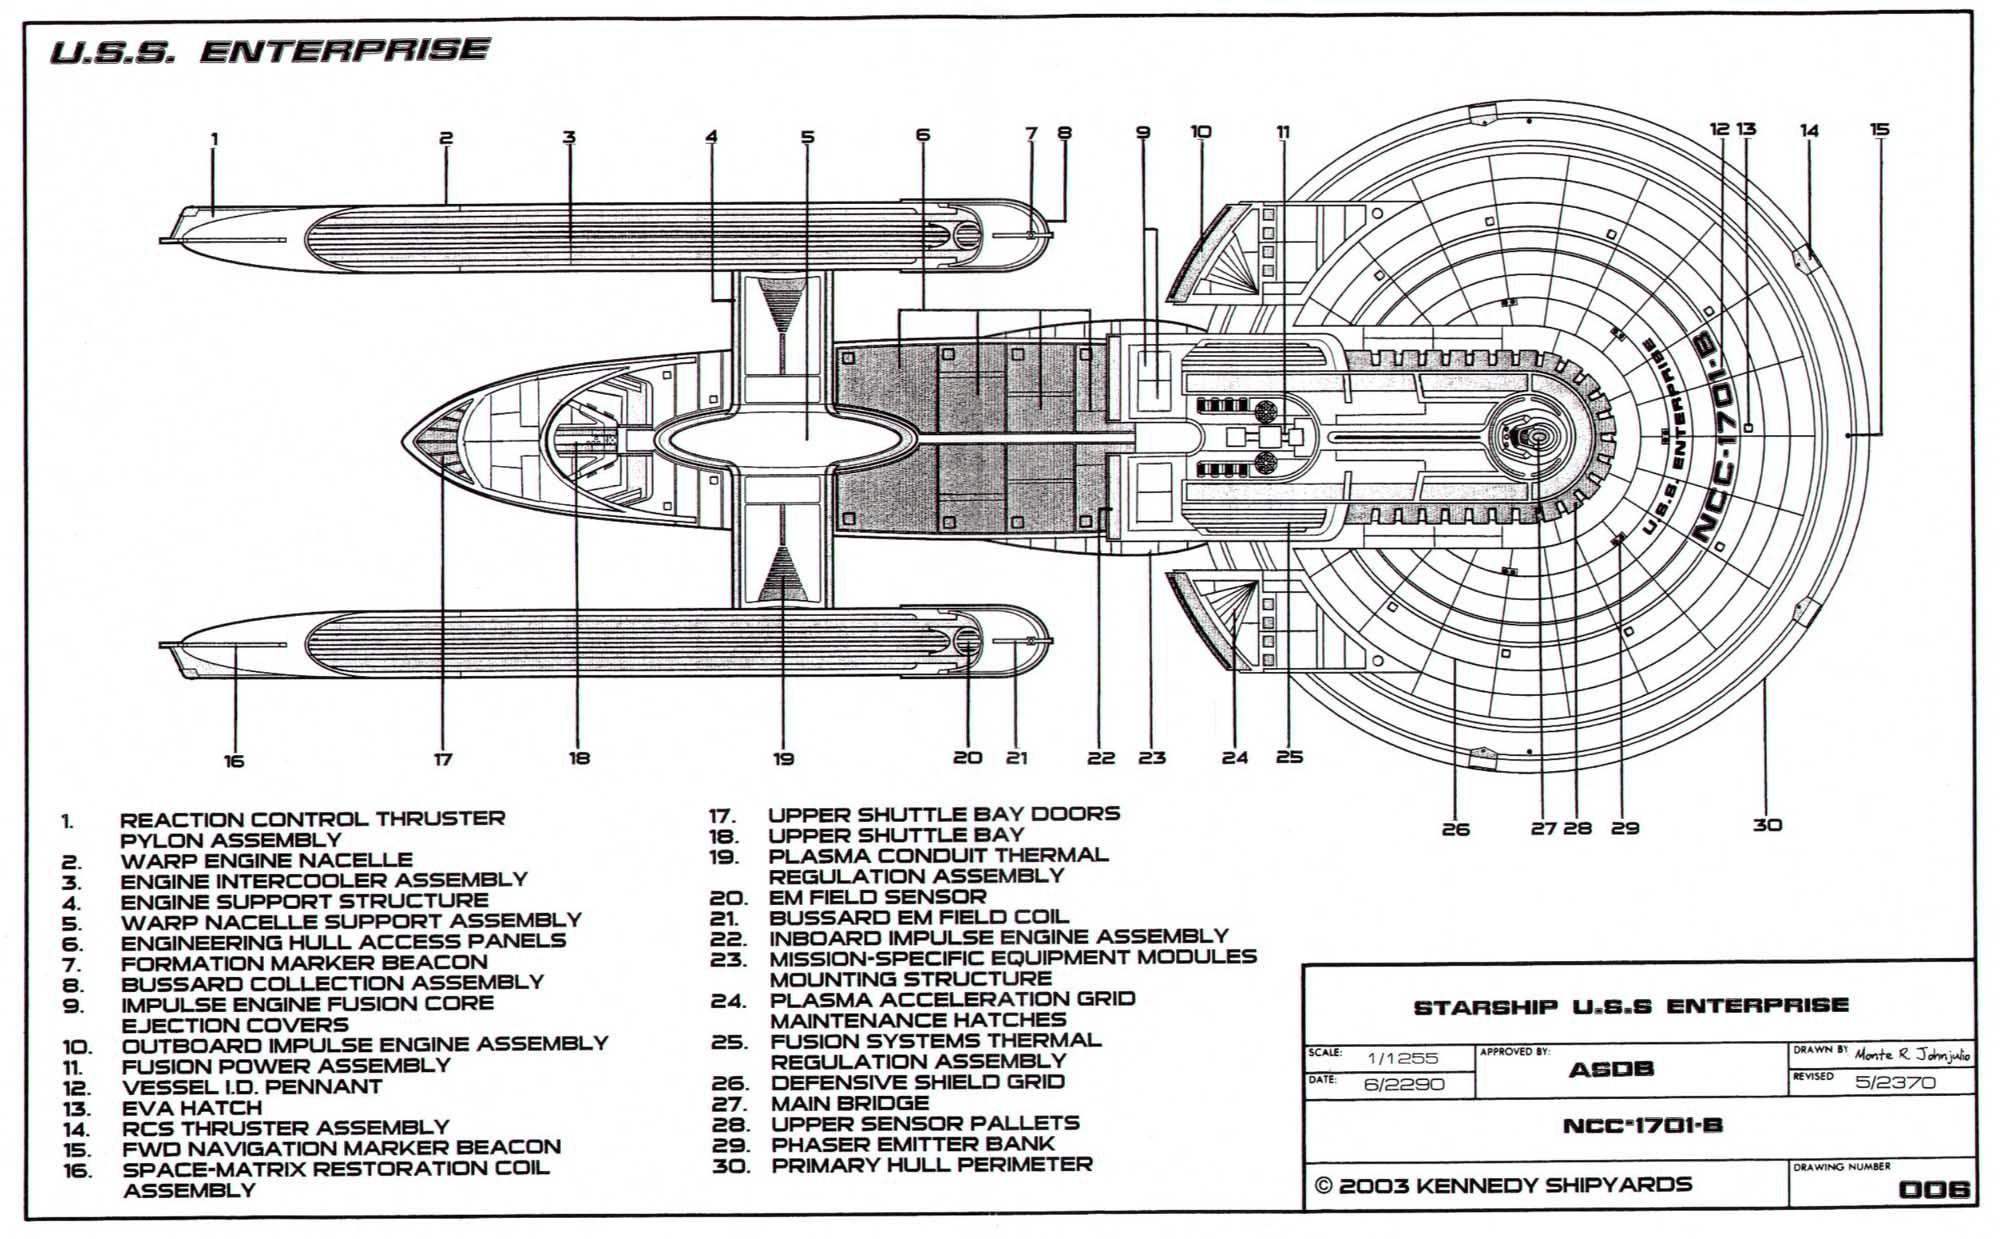 Dorsal side schematic of the Excelsiorclass Enterprise